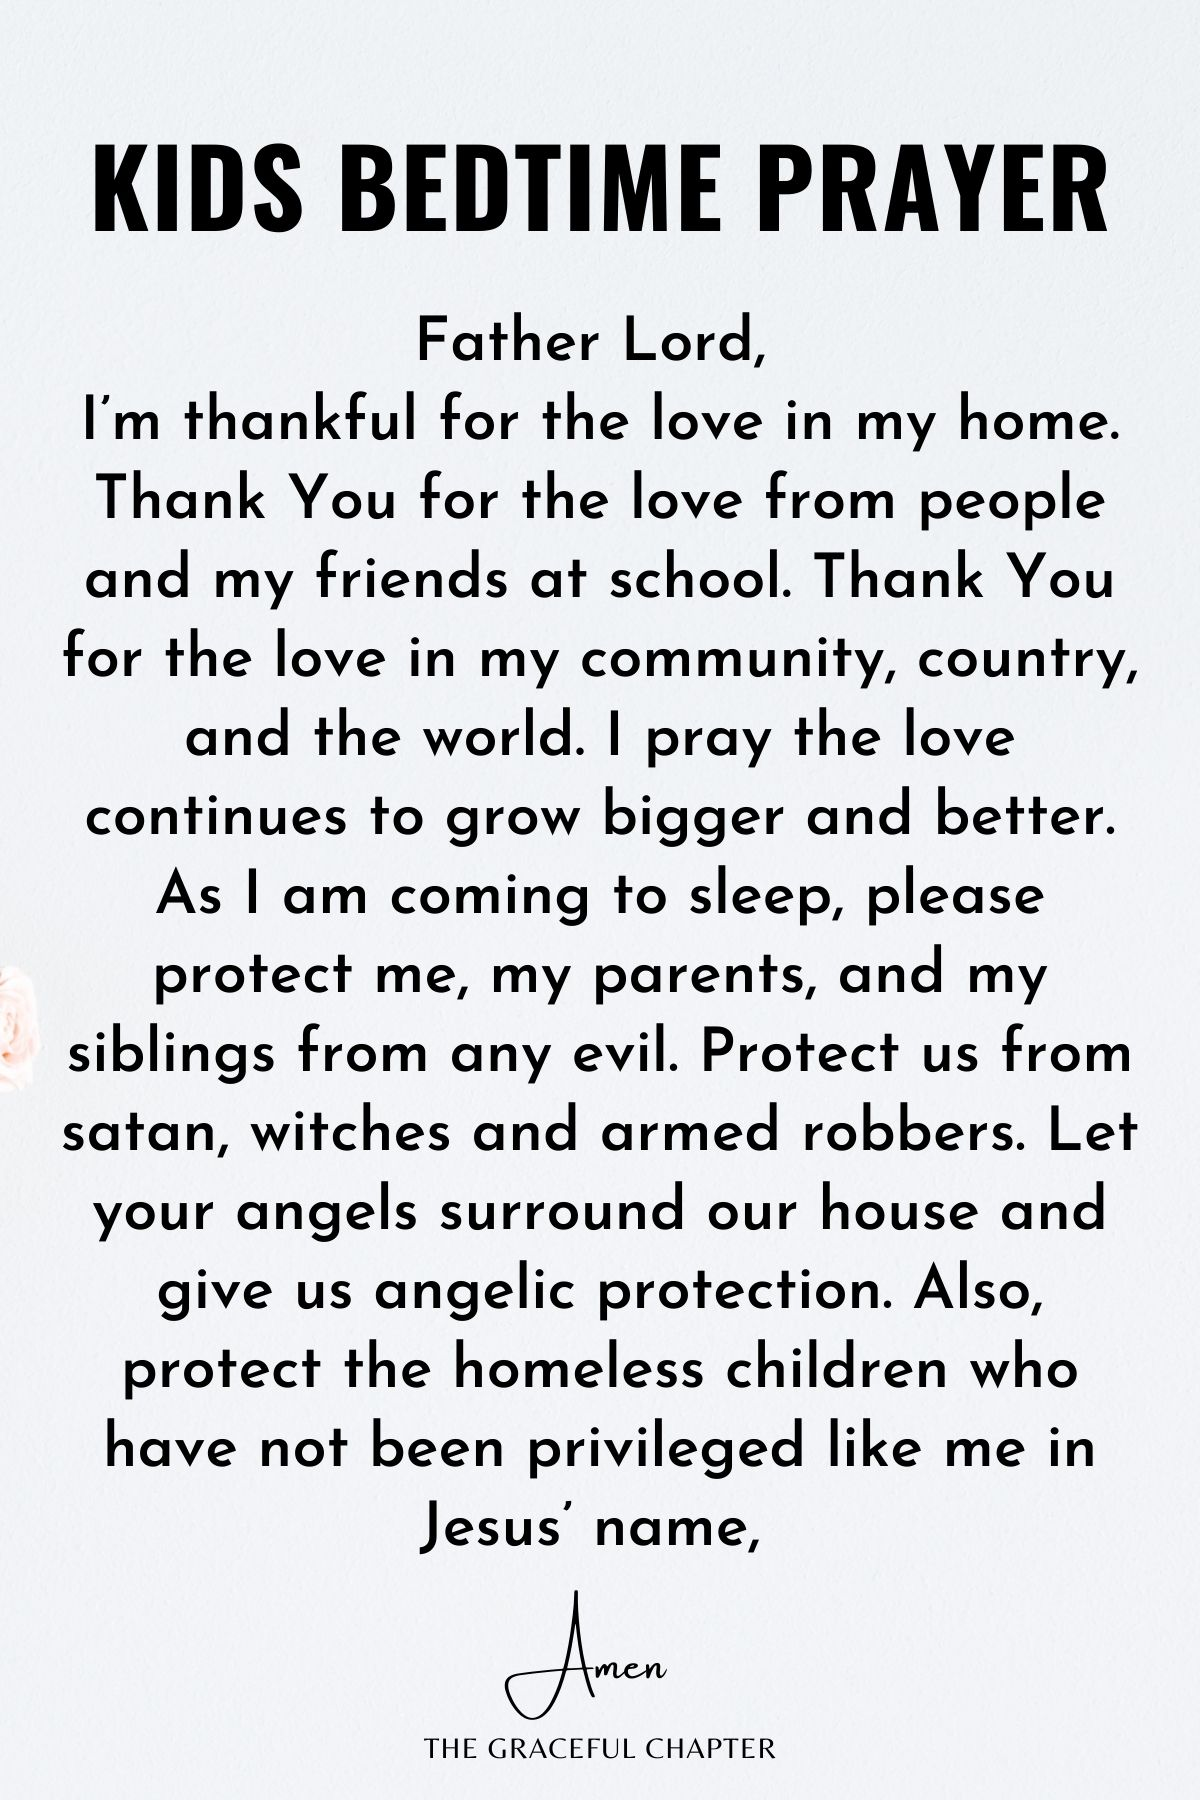 Bedtime Prayers - Please protect me